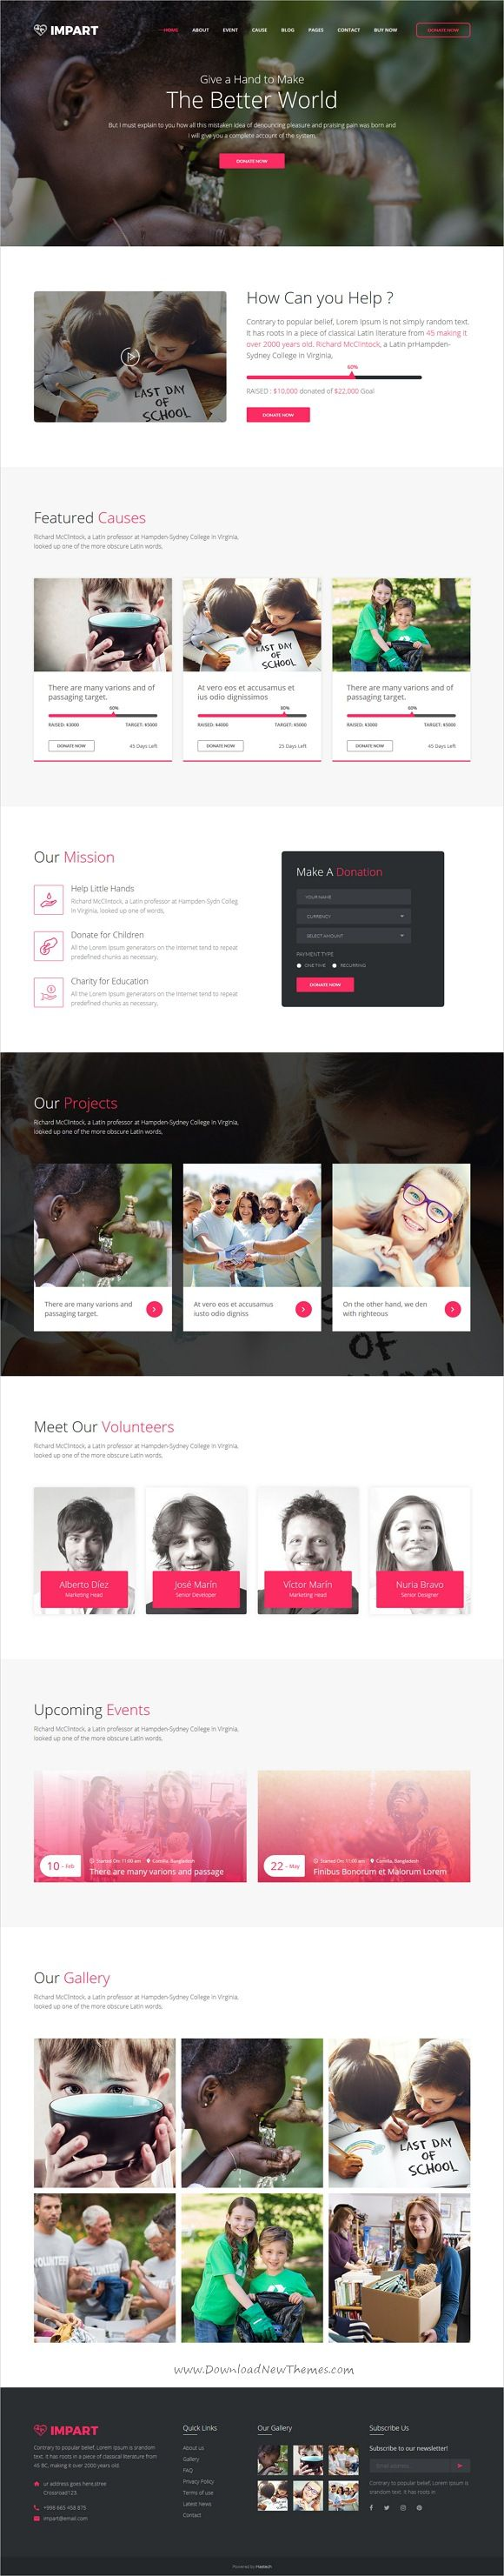 Impart is clean and modern design 2in1 responsive #bootstrap template for charity and #fundraising website download now..